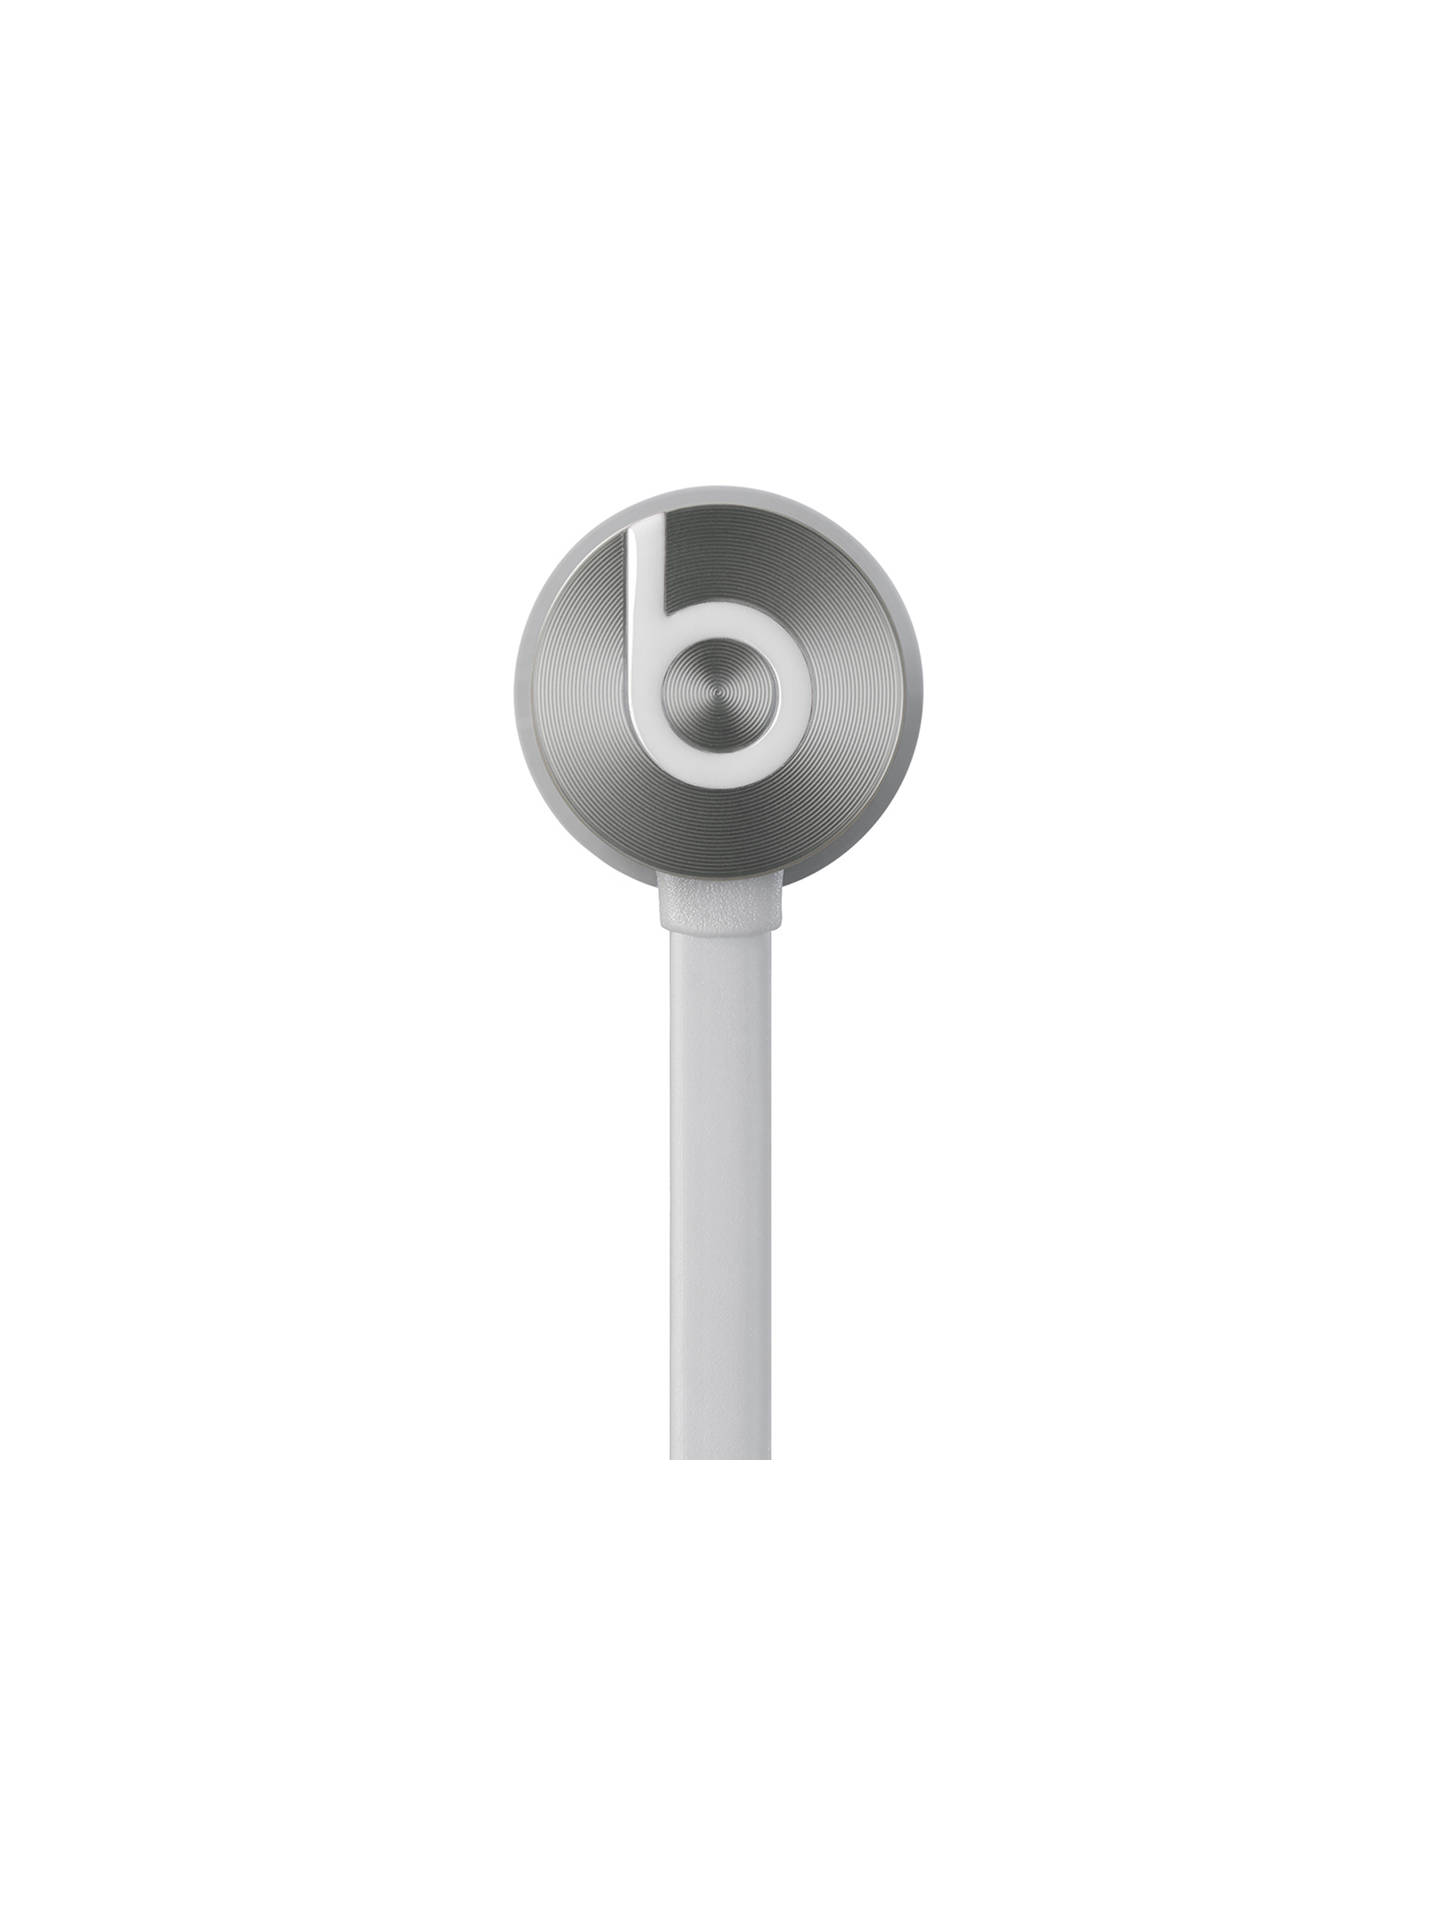 BuyBeats™ by Dr. Dre™ UrBeats In-Ear Headphones with 3 Button Mic/Remote, Icon Collection, Space Grey Online at johnlewis.com